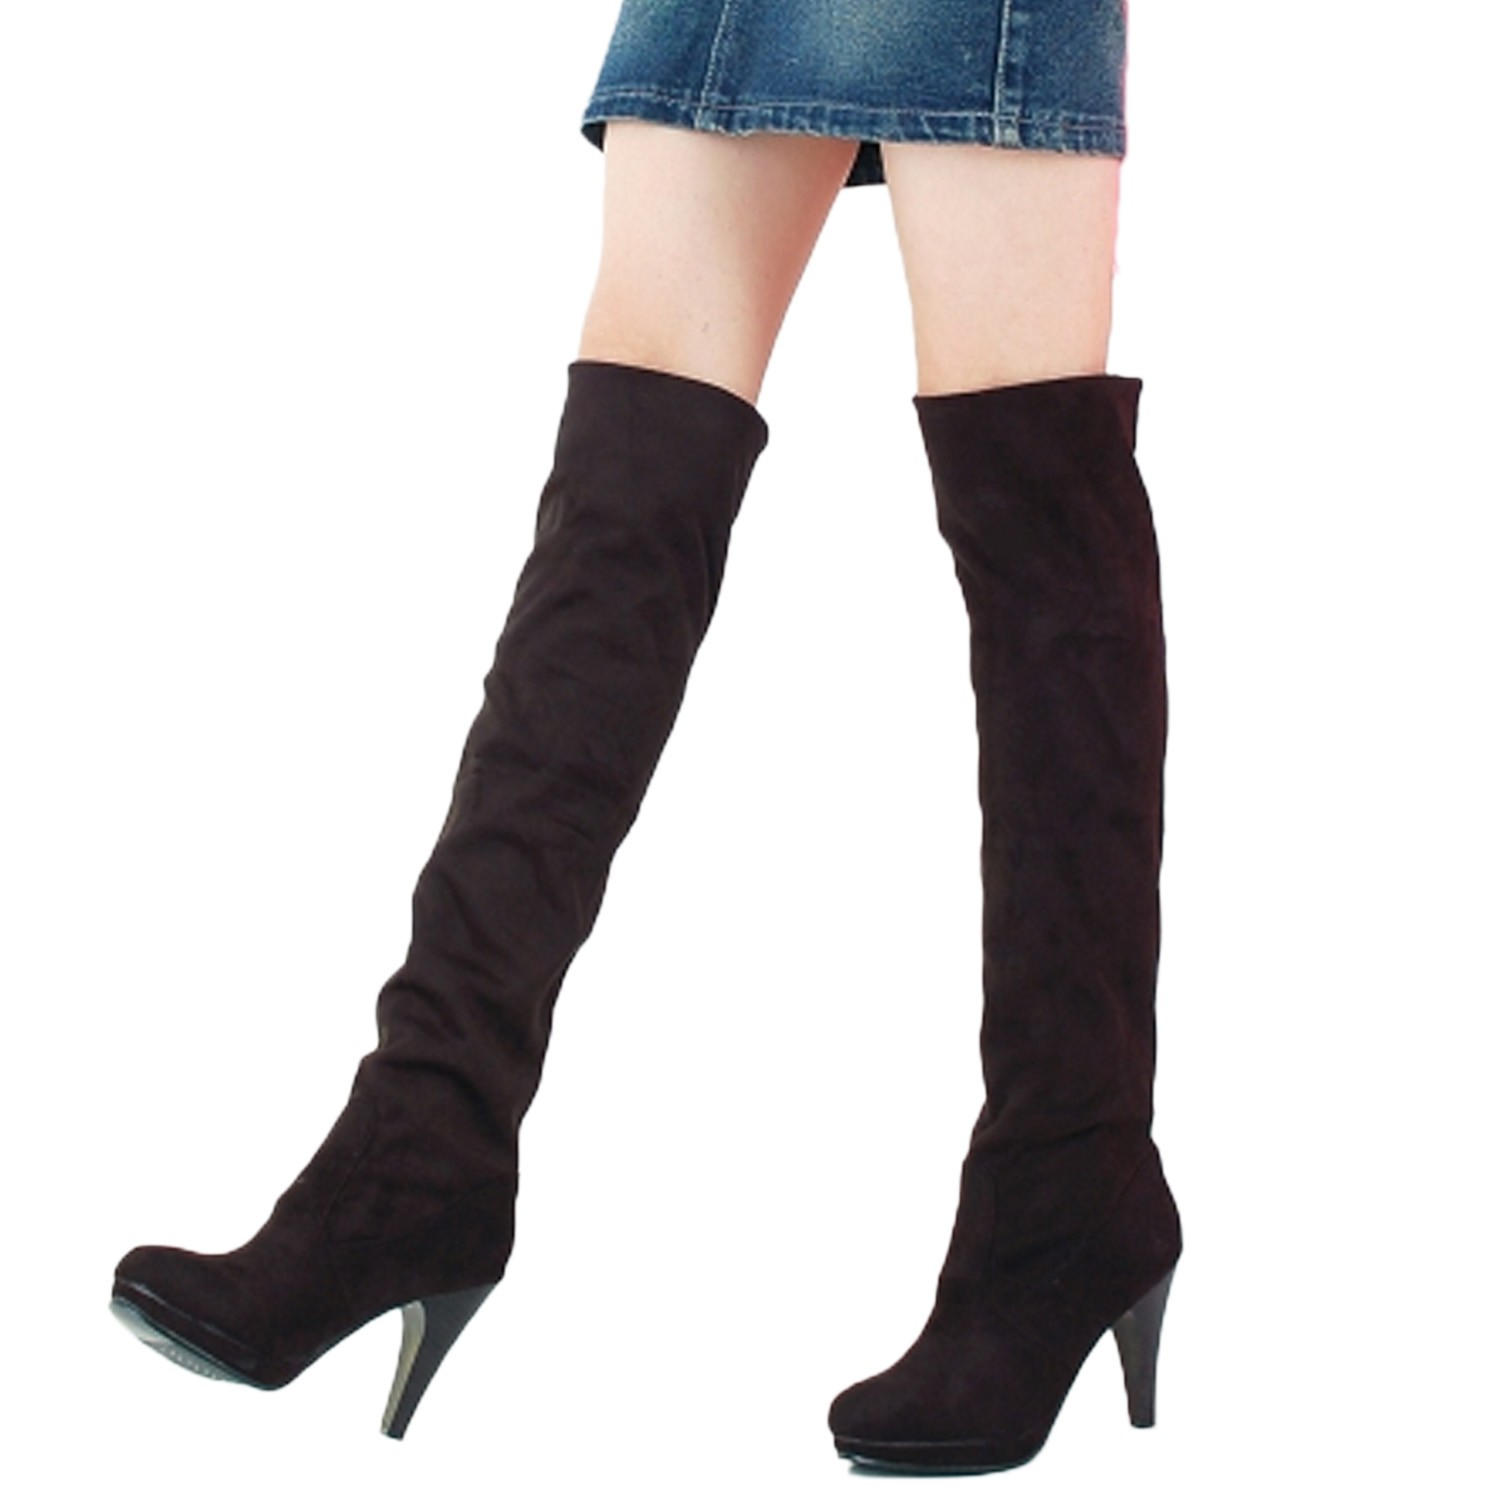 thigh length suede the knee high heels boots uk sz 1